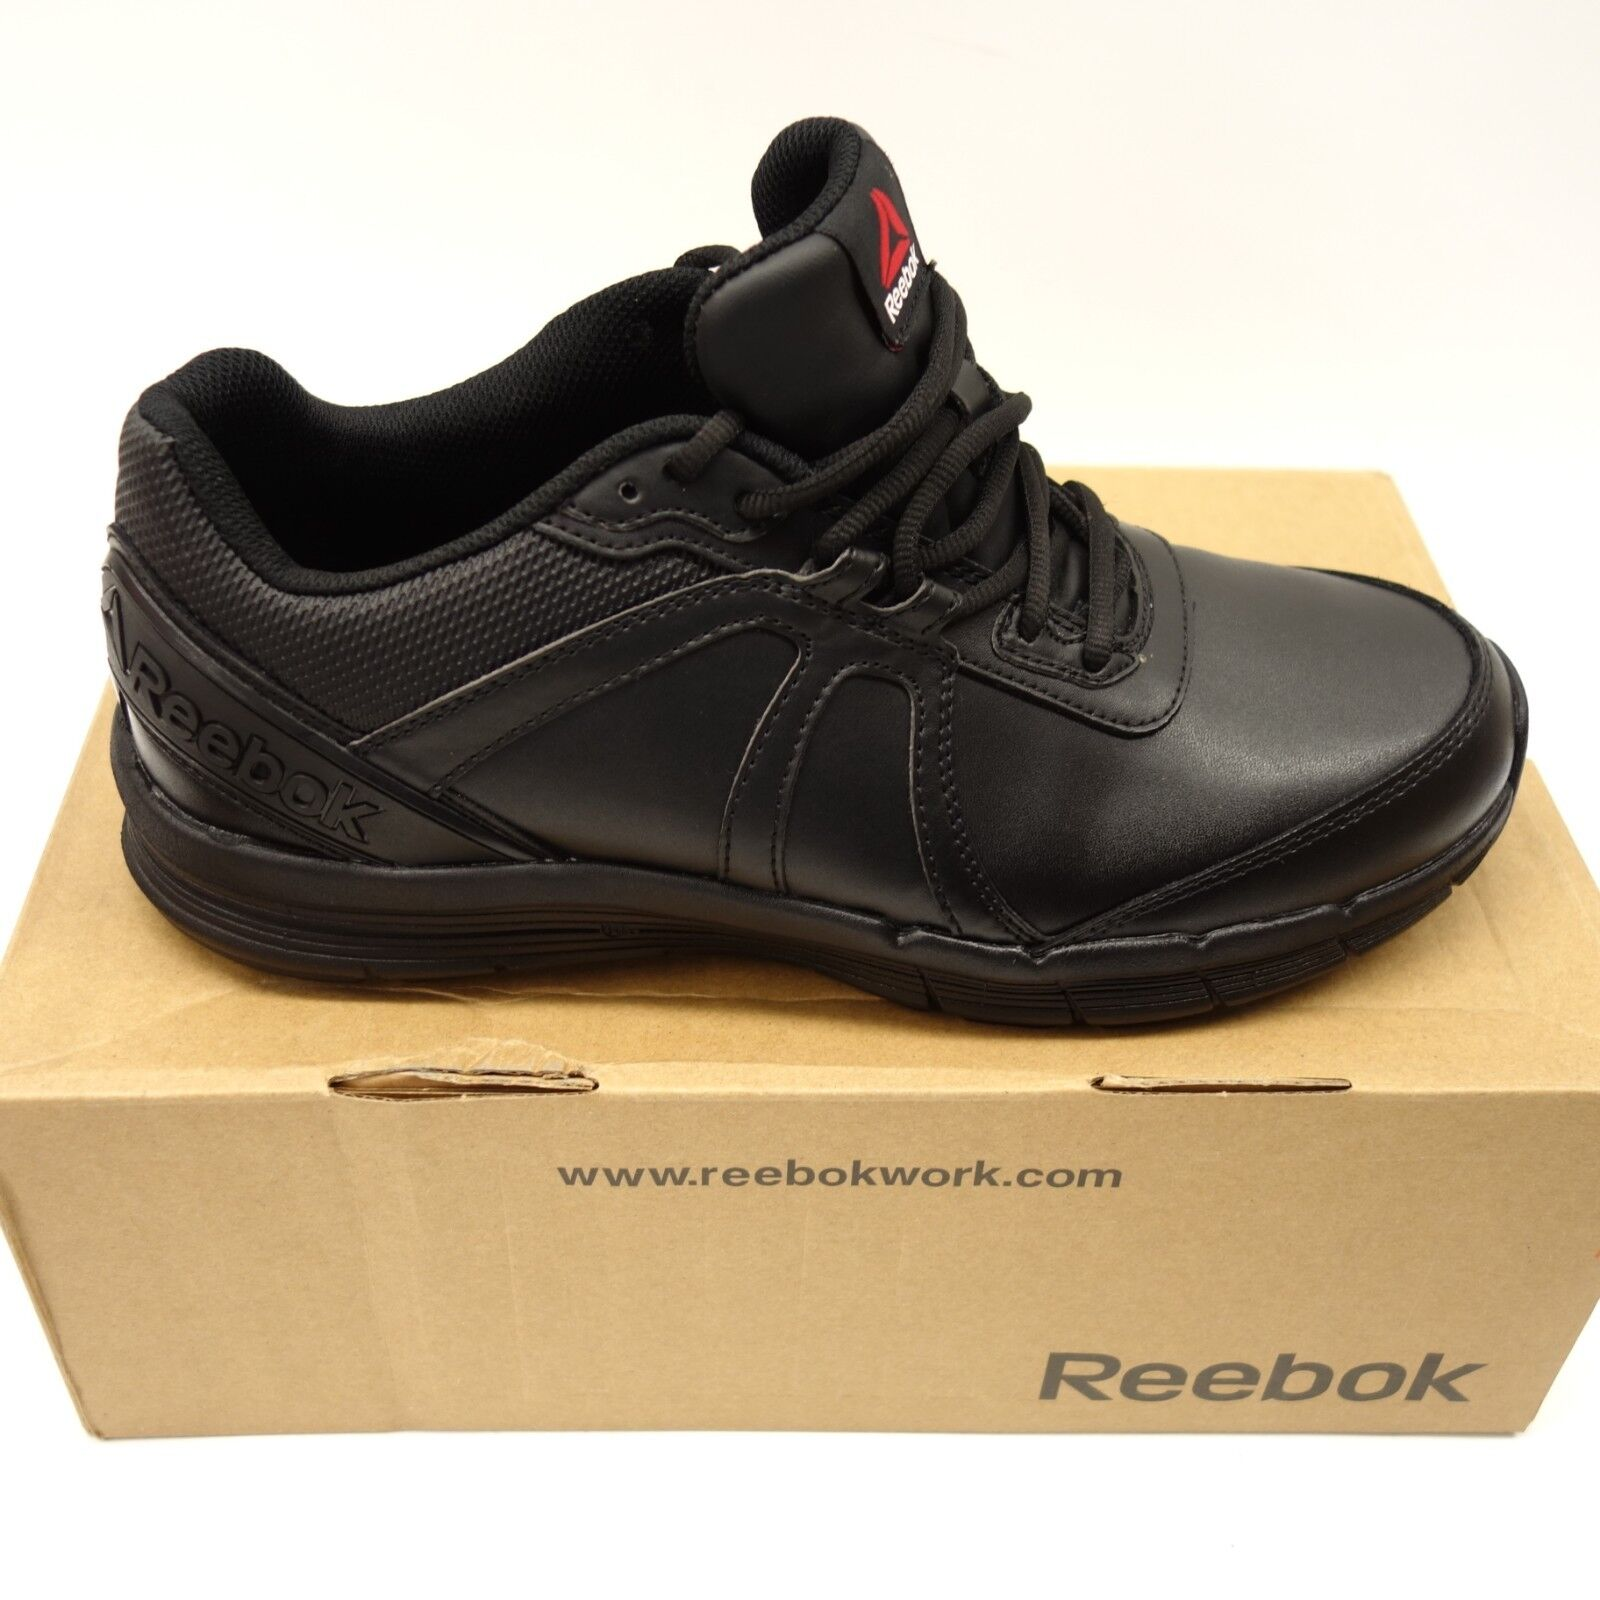 Reebok Mens Guide Work RB3502 Work Athletic Steel Toe Oxford Size 10M